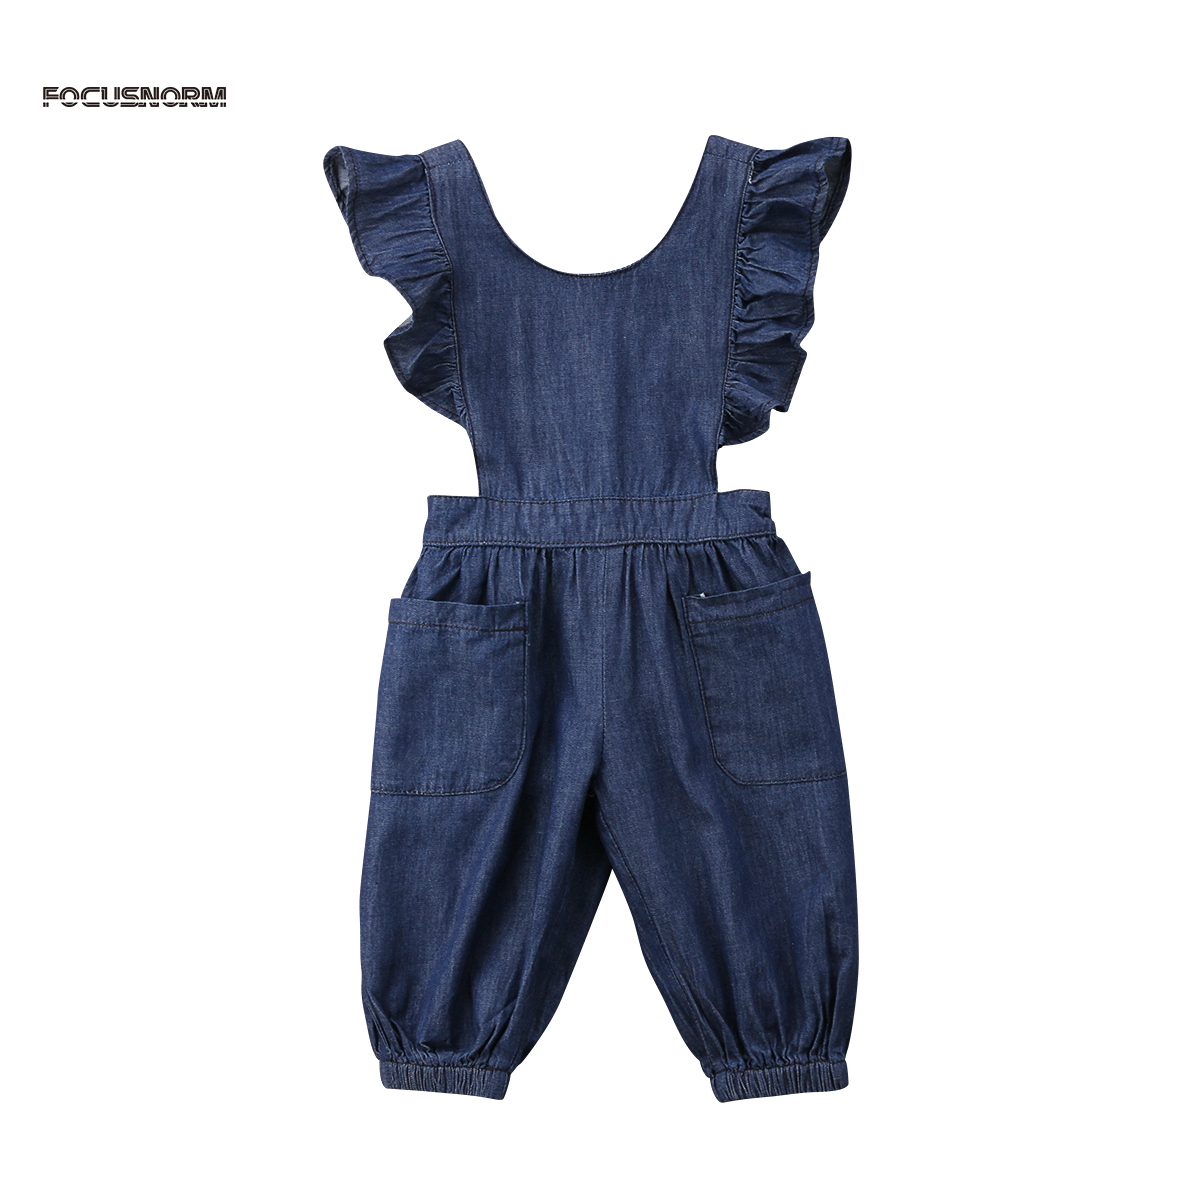 Baby Overalls Outfits Bodysuit Long-Leggings Kids Denim Autumn Fashion New-Arrival